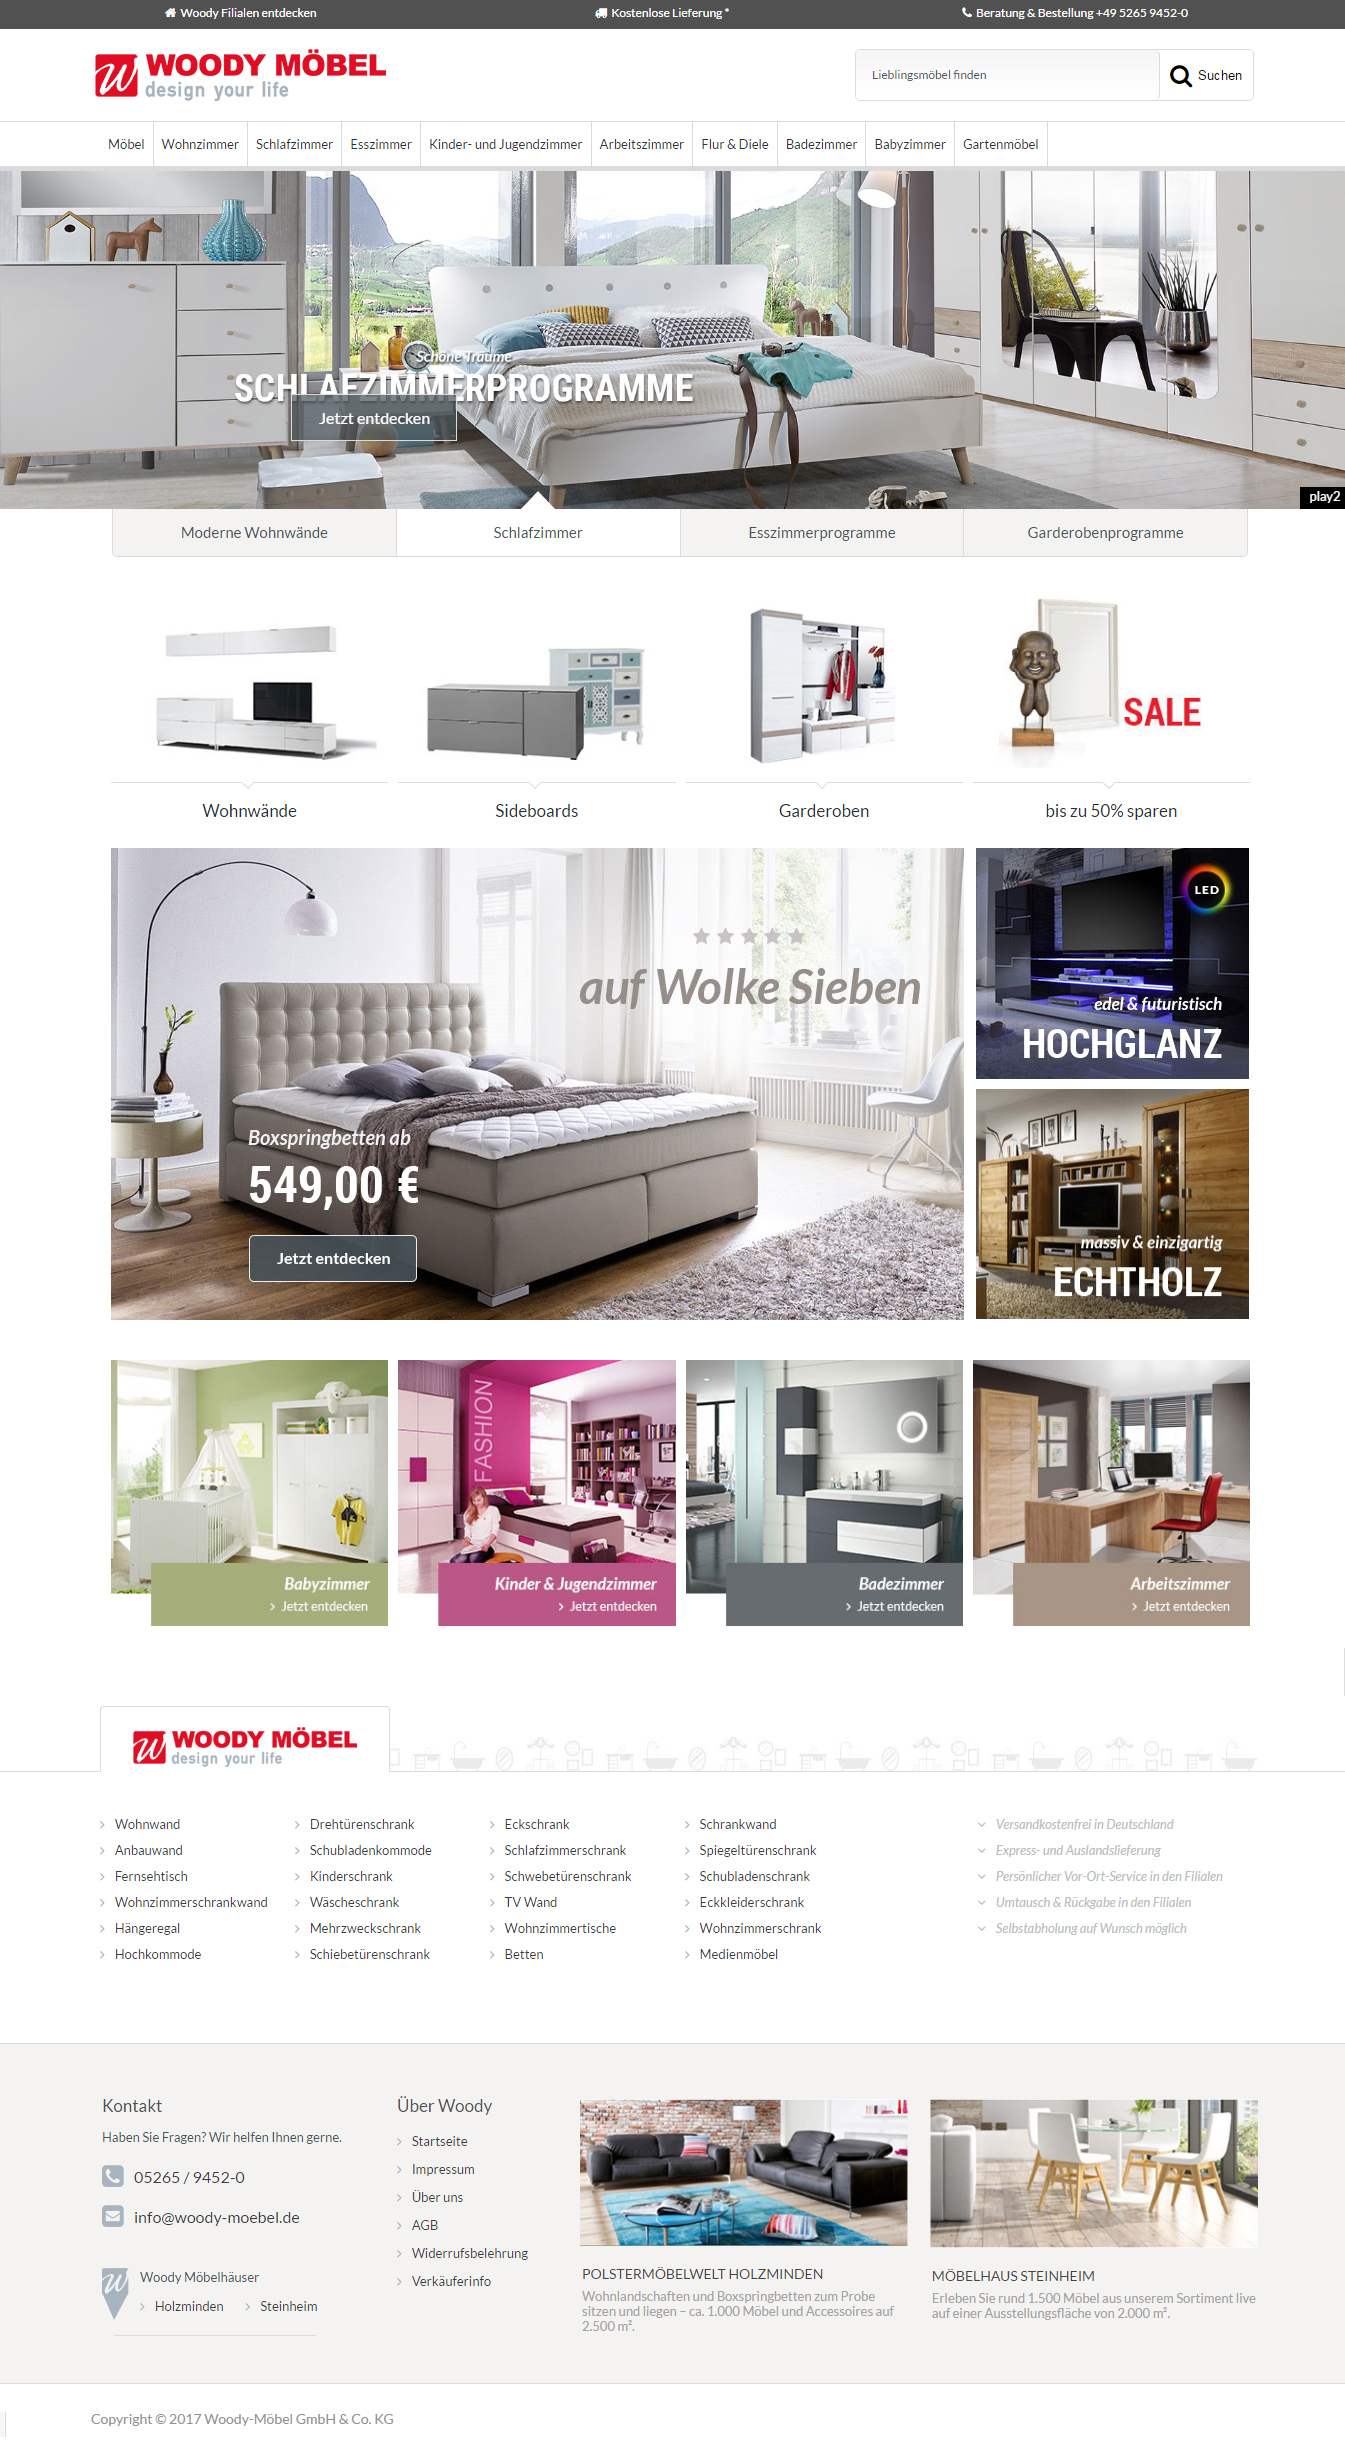 Woody m bel threendy for Ebay template design software